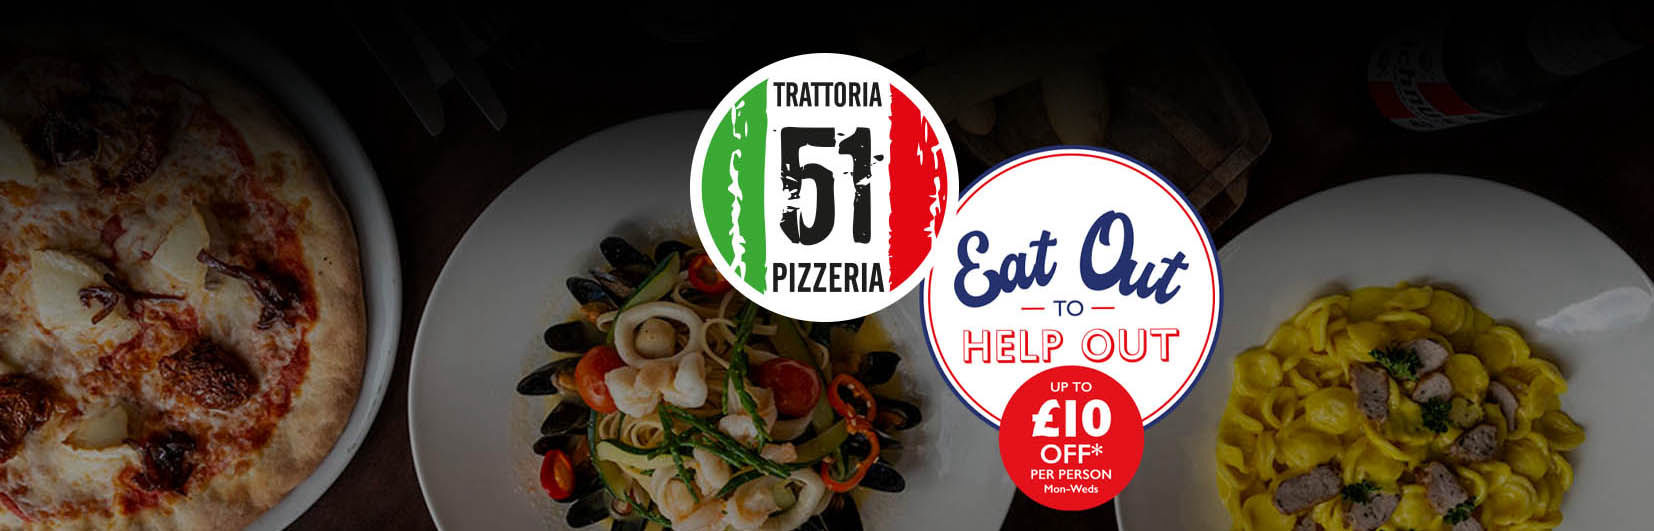 Eat Out to Help Out Trattoria 51